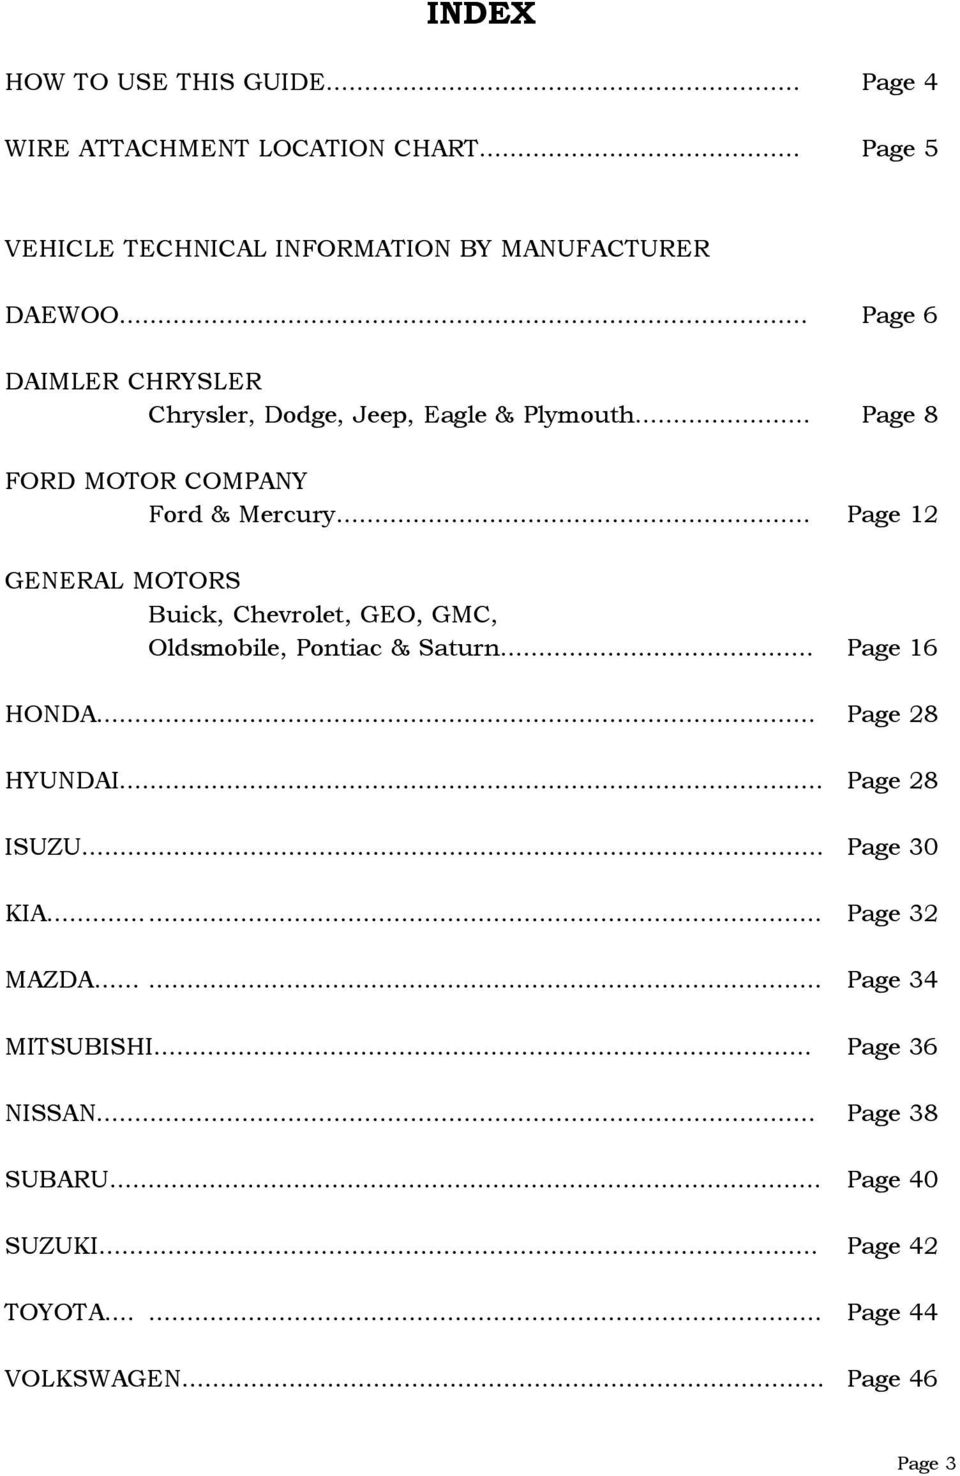 Vehicle Technical Information Guide For Cruise Control Pdf 1997 Infinity Eagle Mini Right Fuse Box Diagram Page 12 General Motors Buick Chevrolet Geo Gmc Oldsmobile